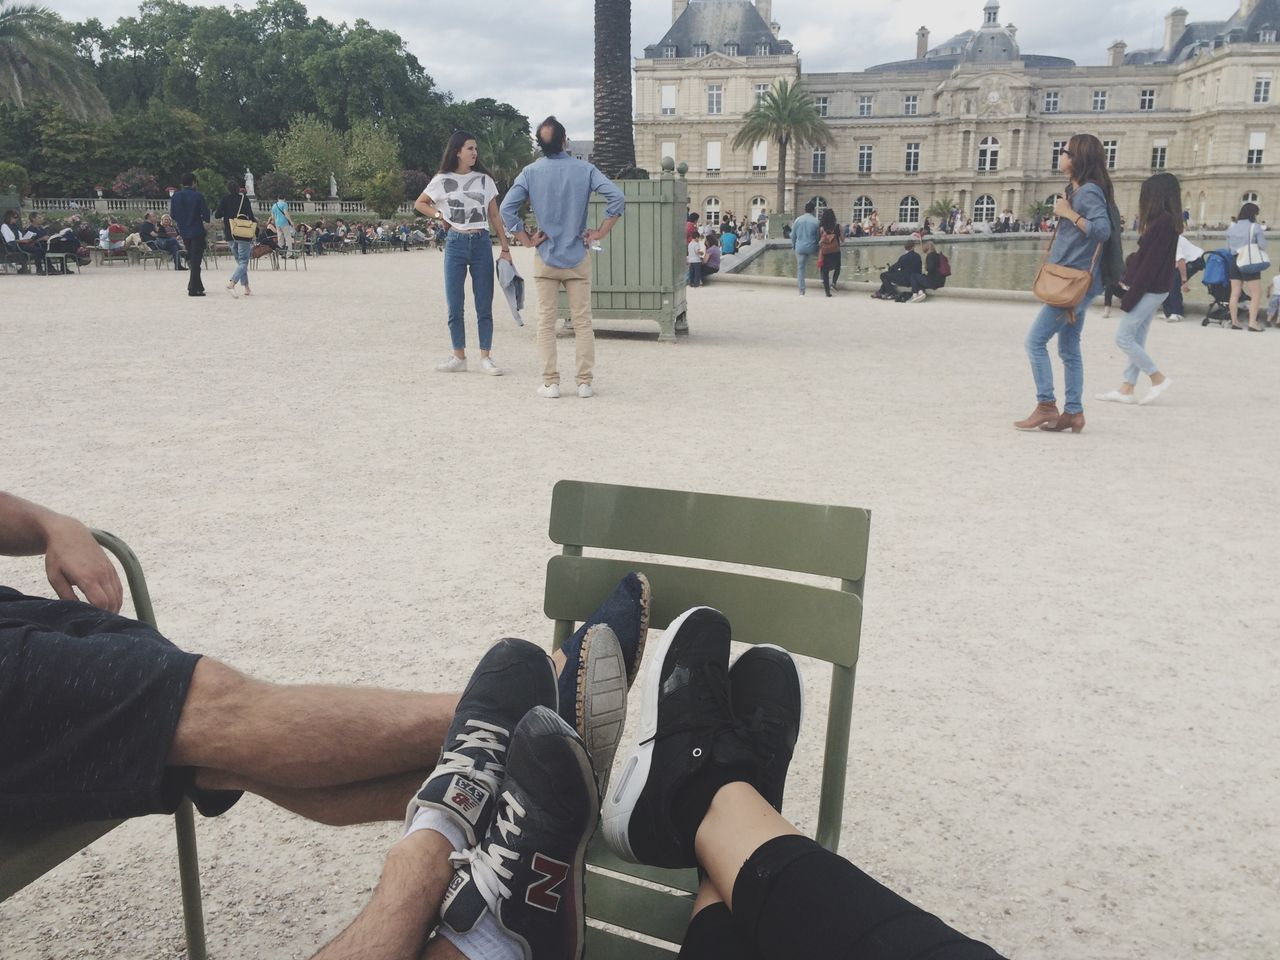 Relaxing Relaxation Feet Leisure Activity Lifestyles Sitting Shoe Shoe Shoes City Life From My Point Of View Parc Park Jardin Du Luxembourg Paris People And Places Paris, France  Weekend Friends Friendship Sneakers Outdoors Day Basket Baskets